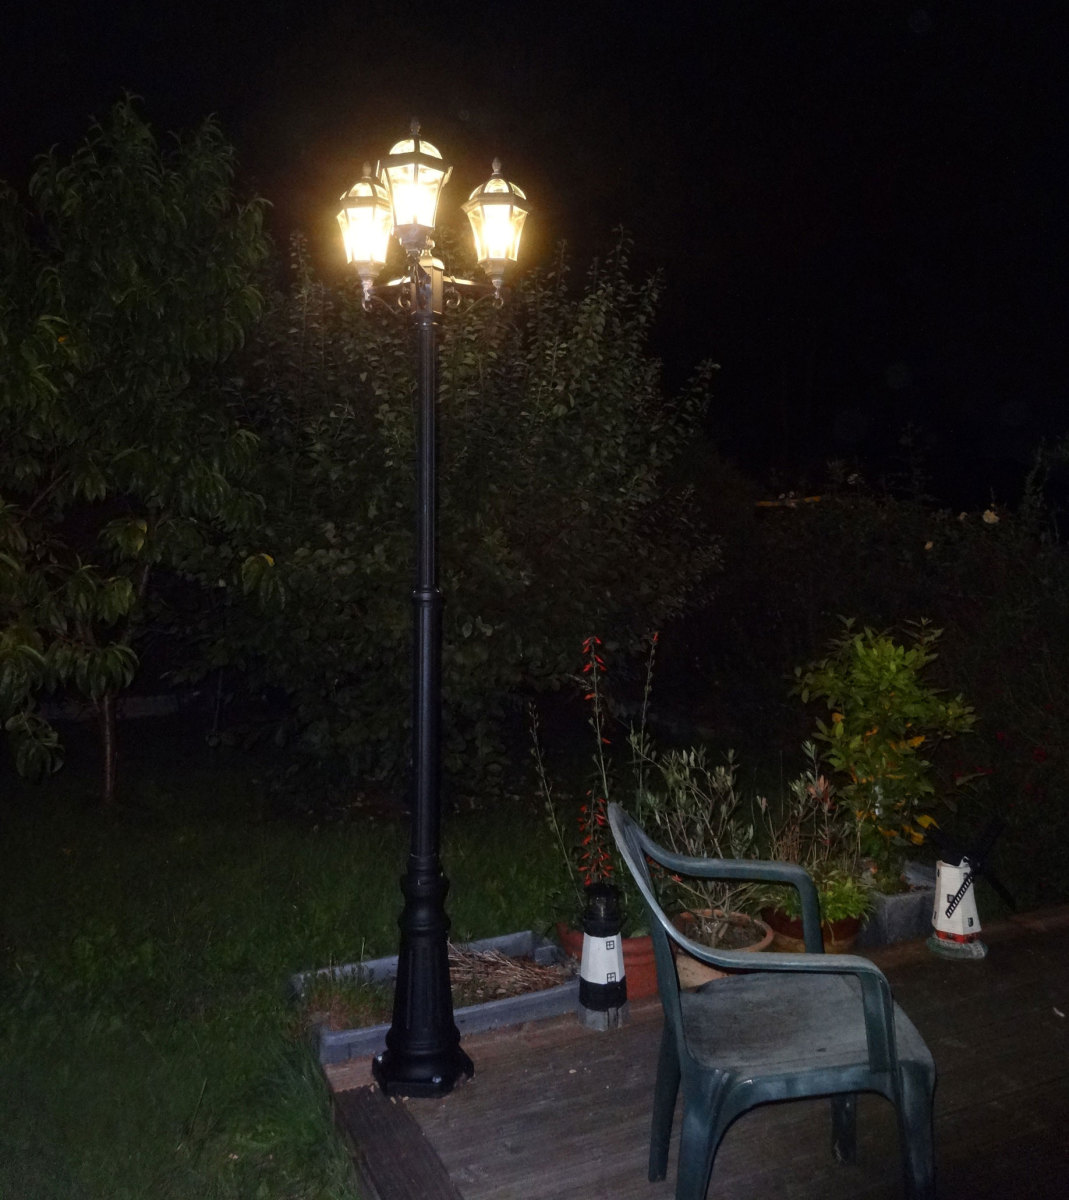 Renovated streetlamp in our back garden.